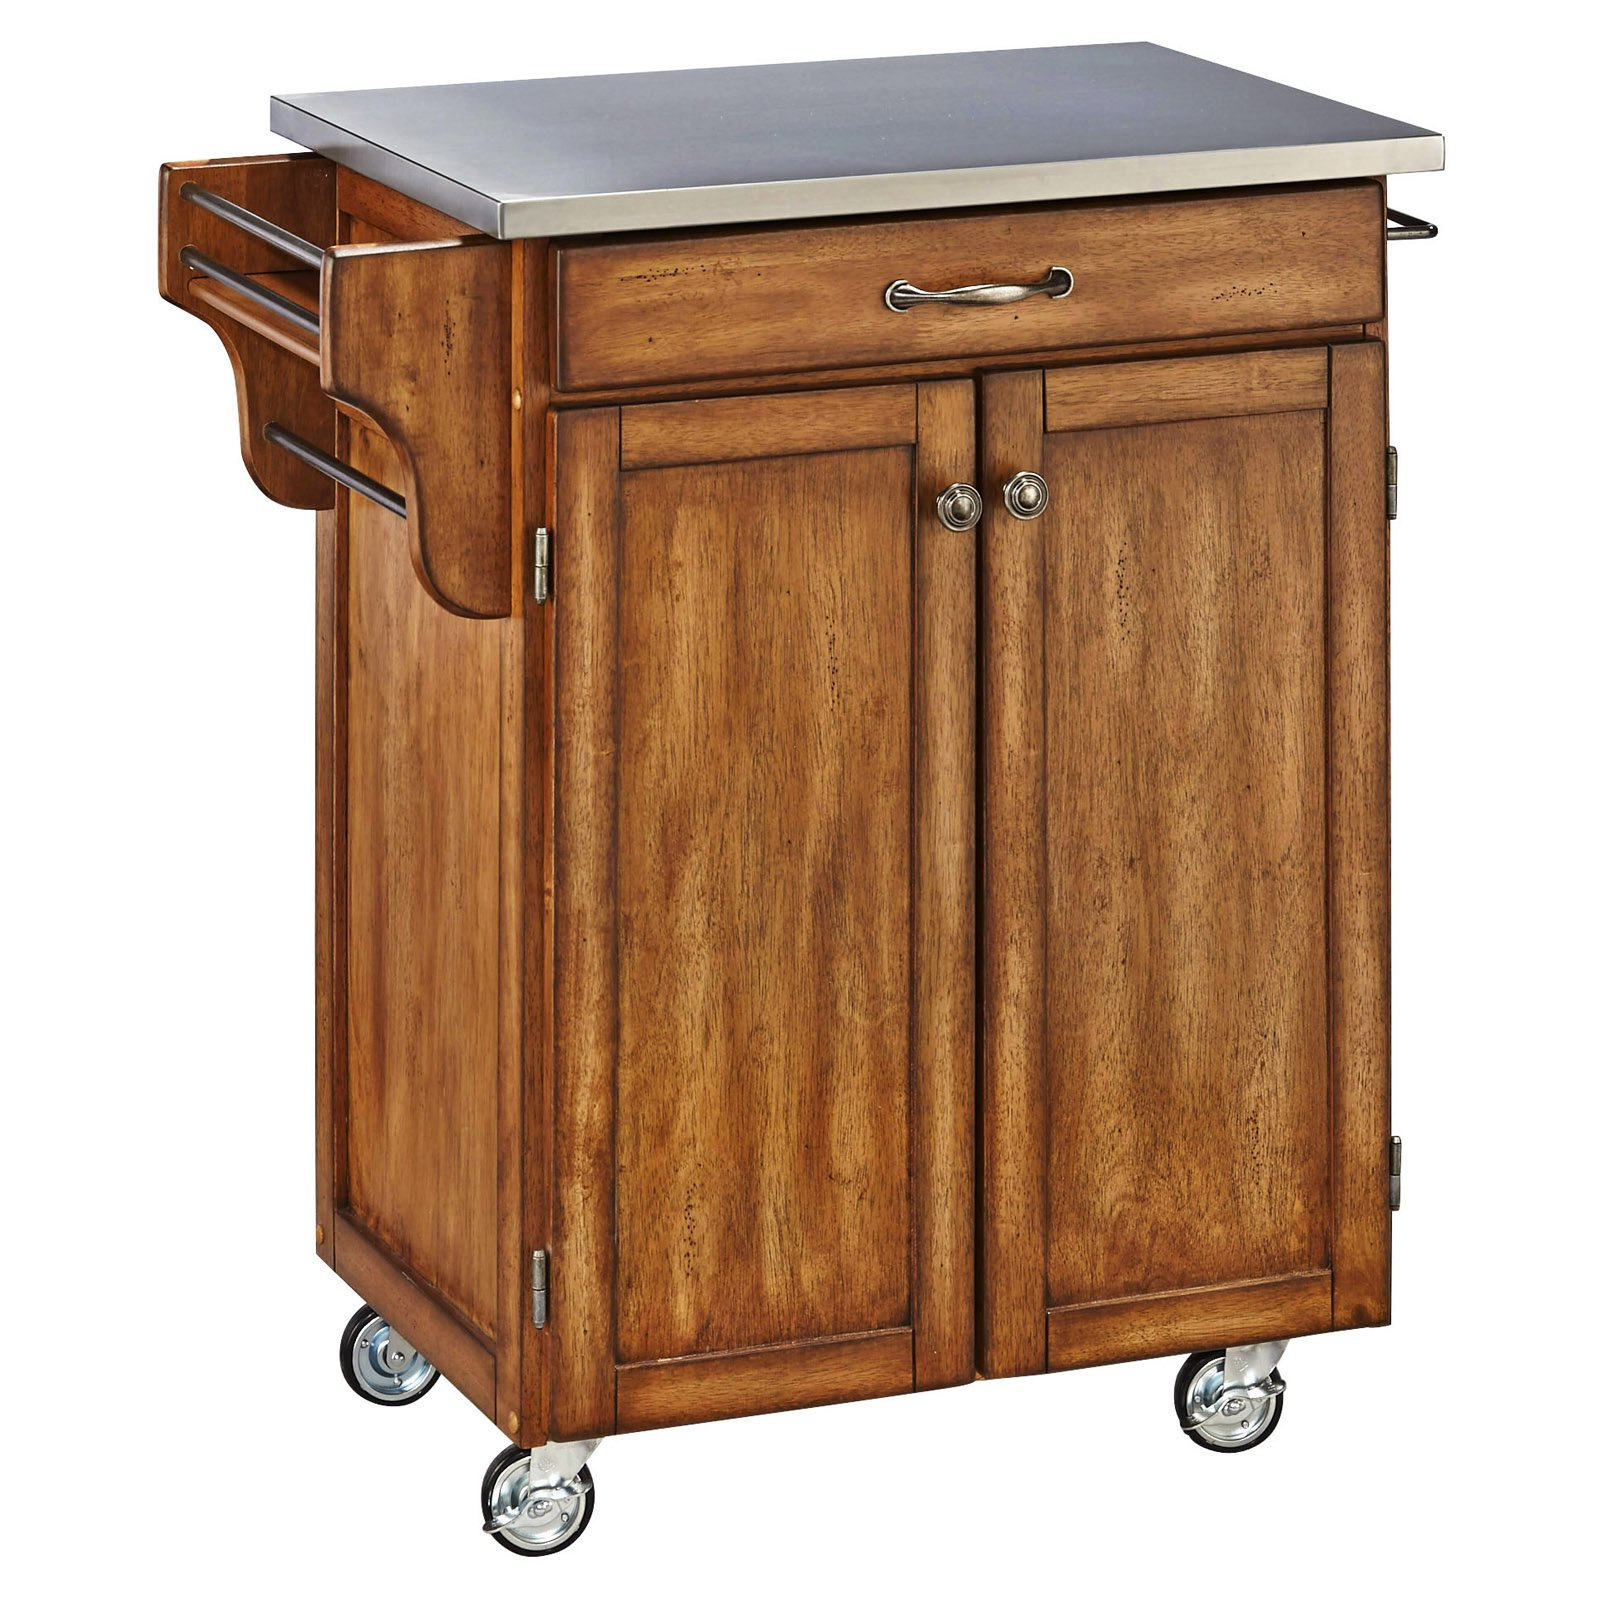 Home Styles Kitchen Cart, Black / Stainless Steel Top - Walmart.com